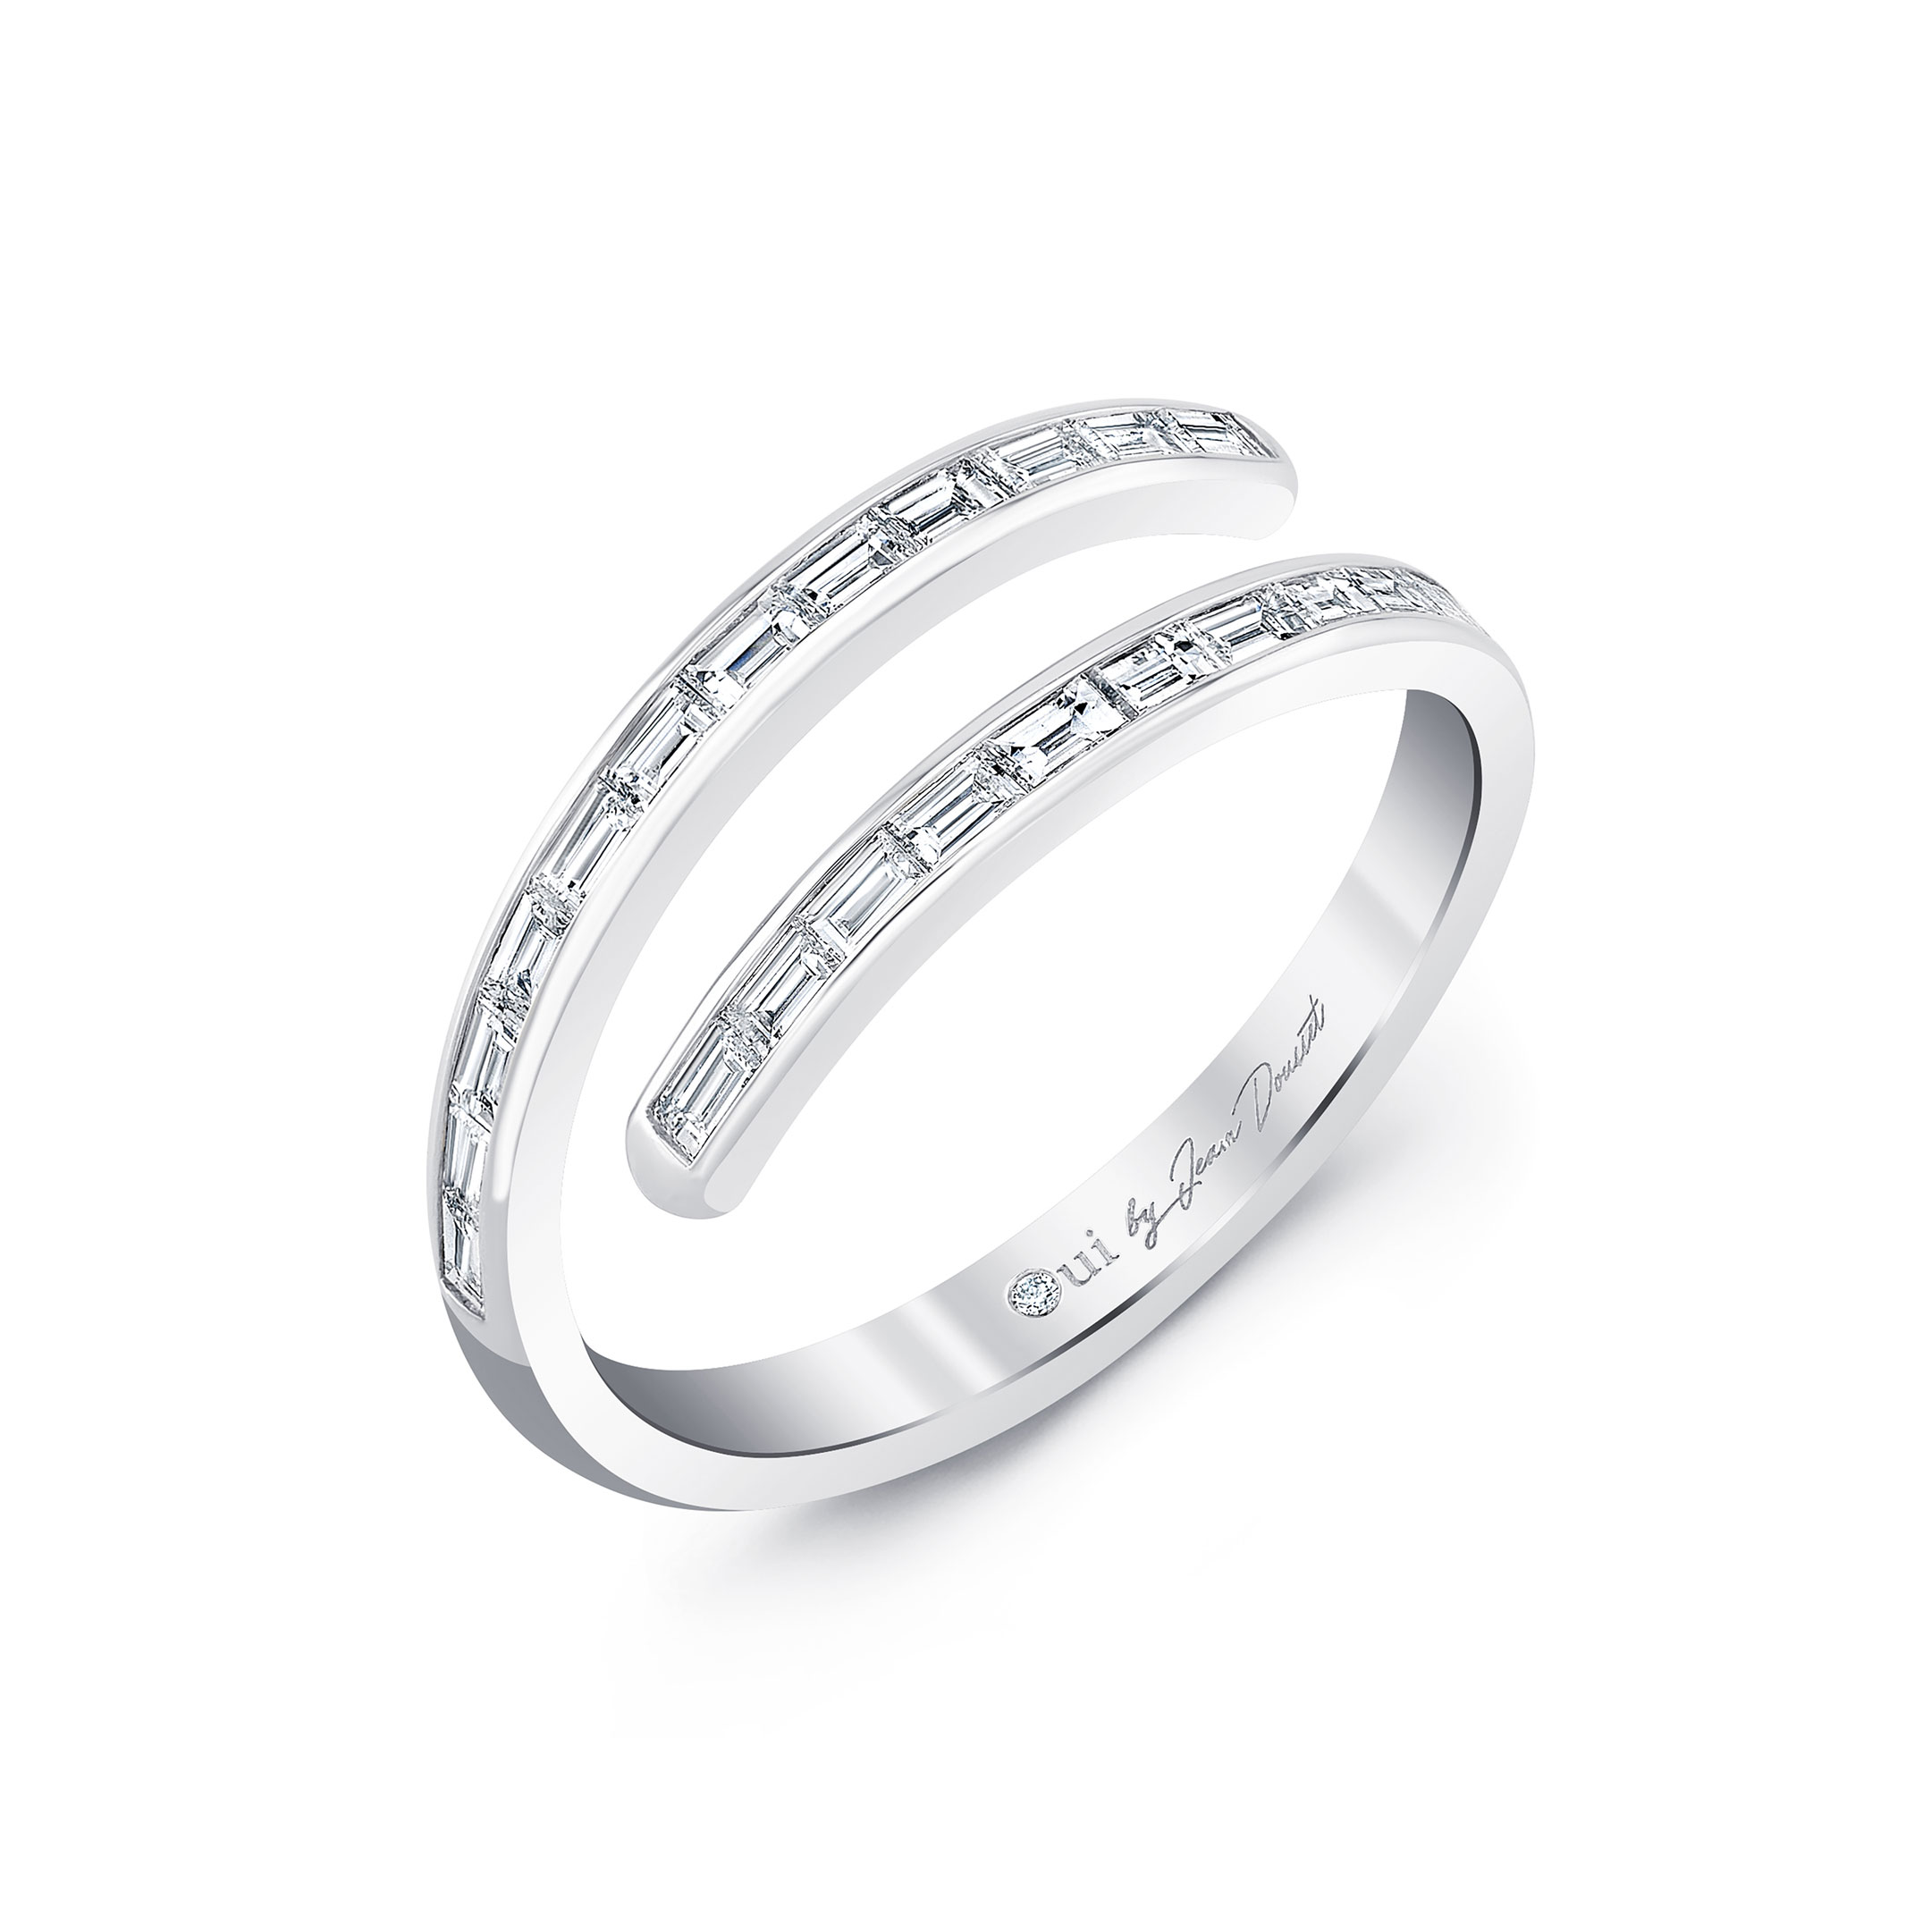 Baguette Bezel Diamond Pavé Wrap Ring in 18k White Gold Profile View by Oui by Jean Dousset